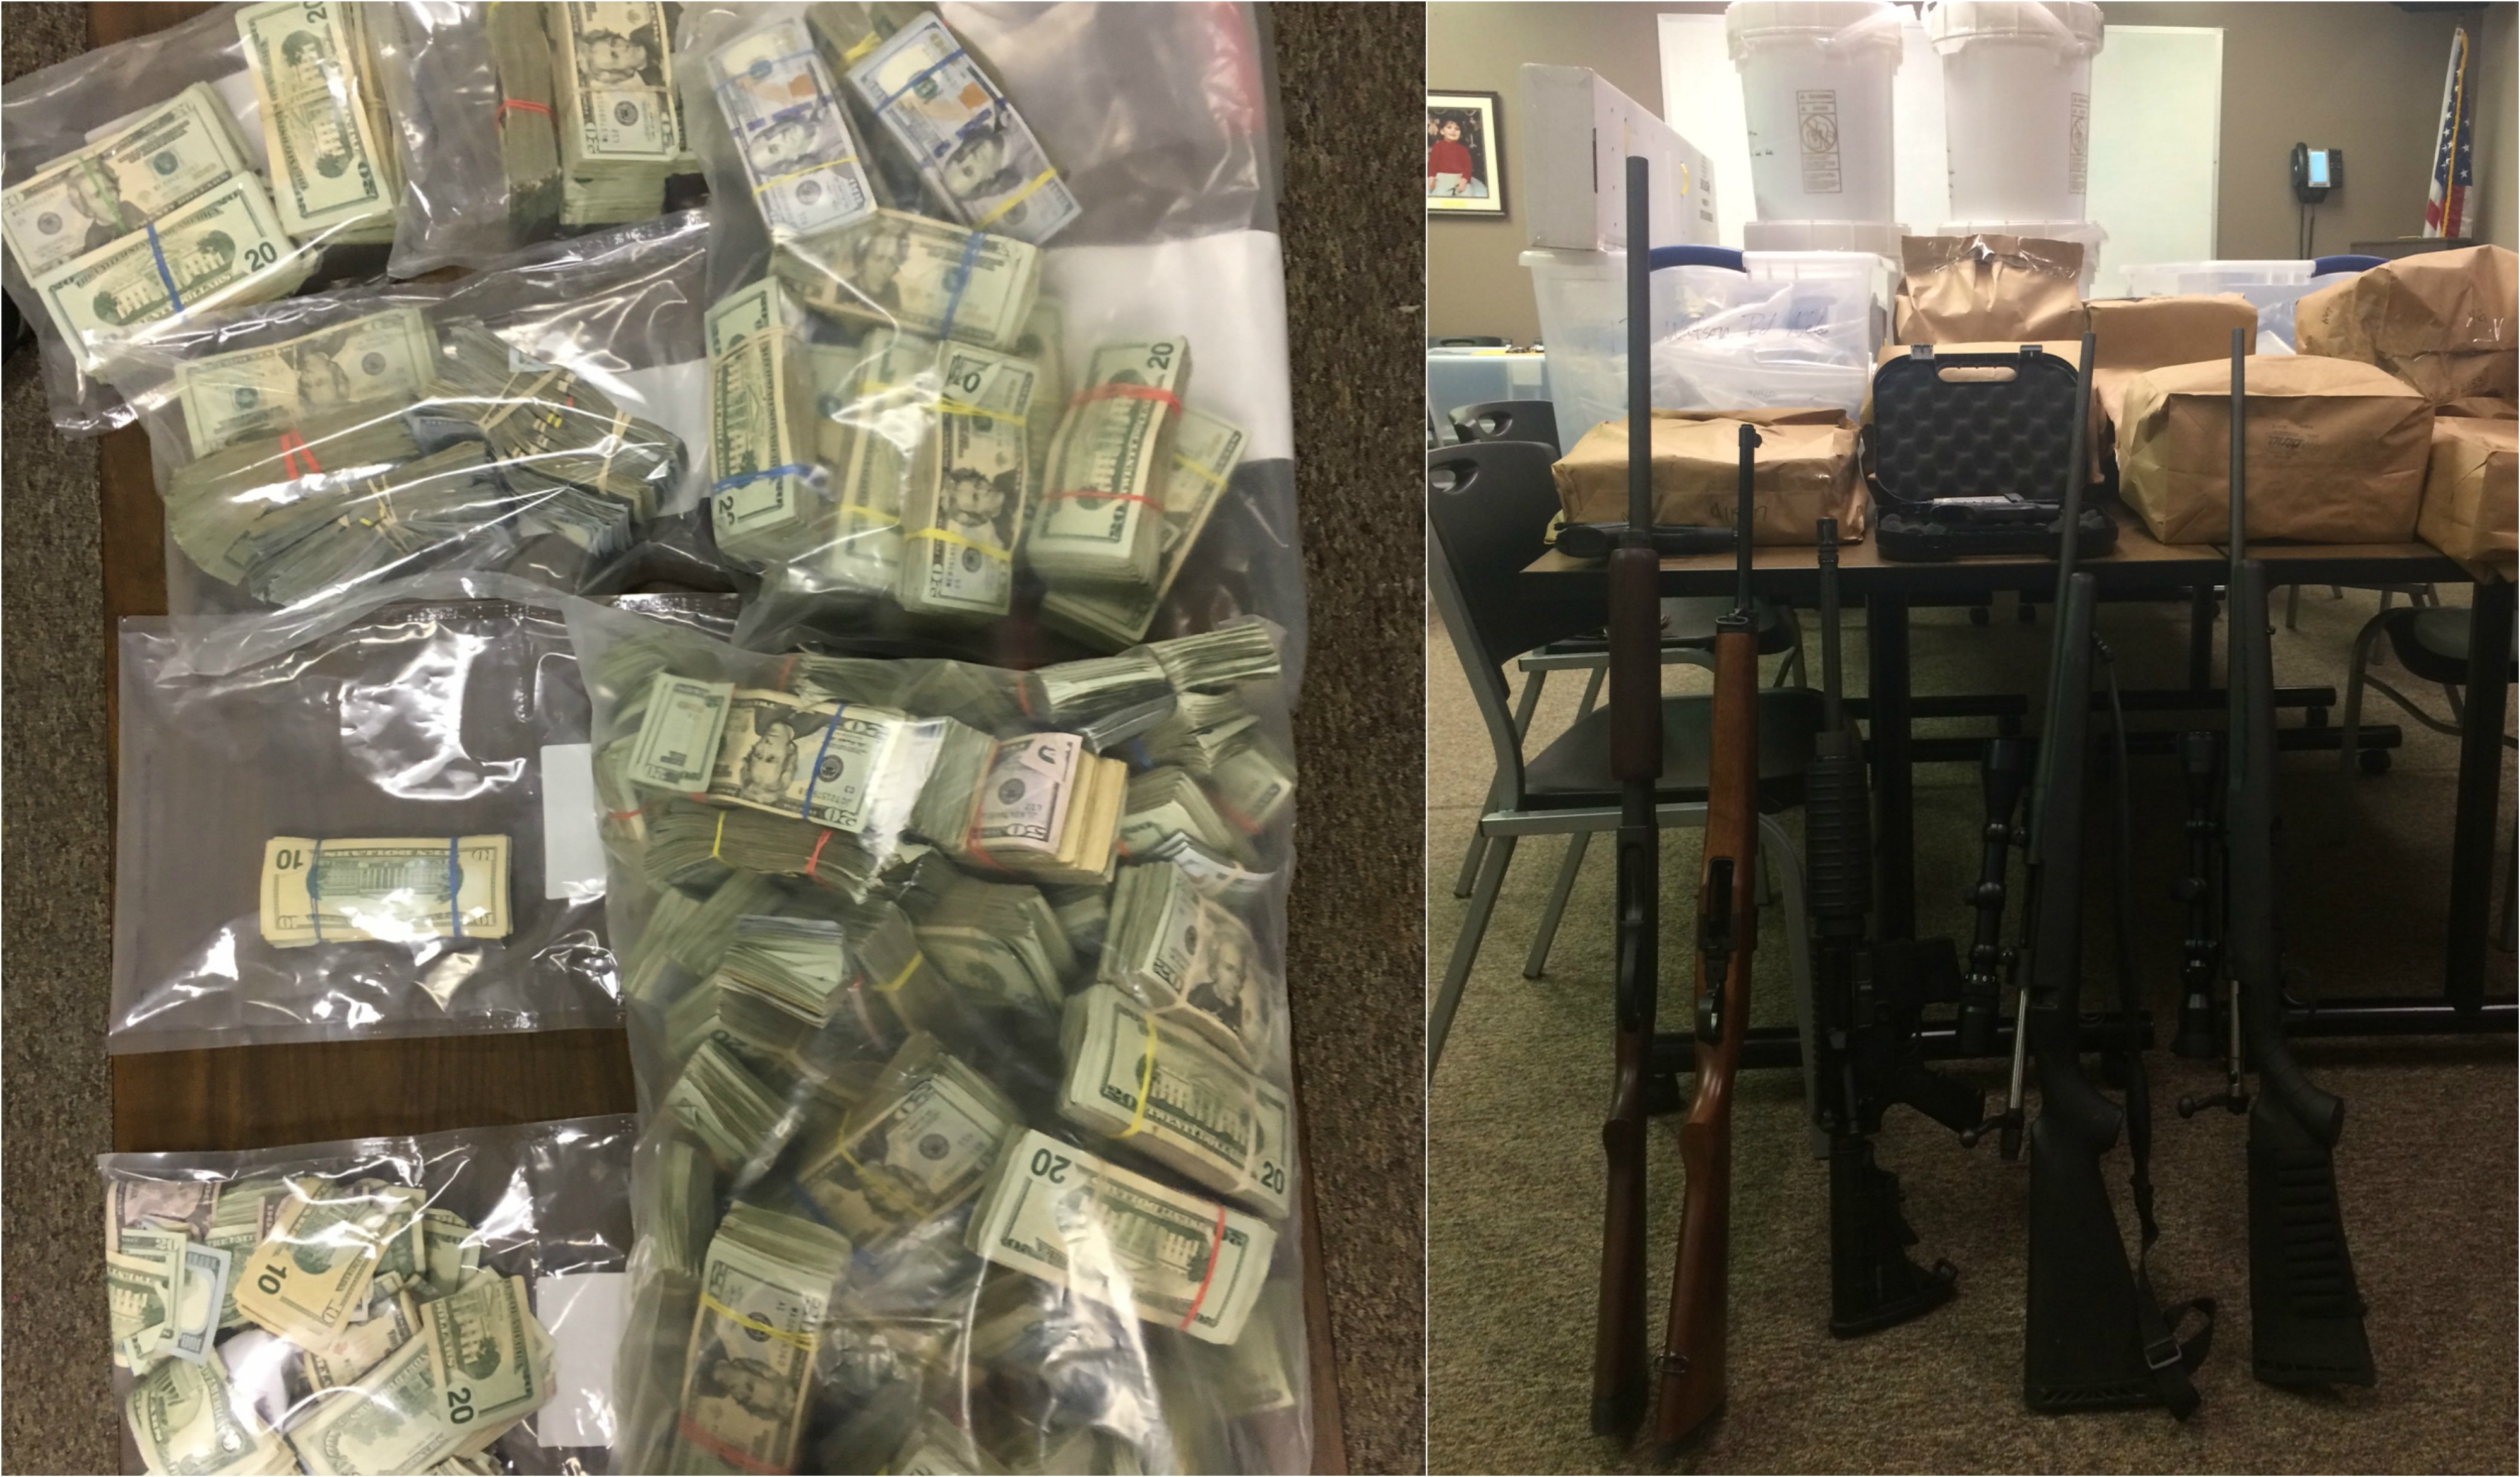 What began as an investigation into a Nebo man's drug activity has led local, regional, state and federal authorities to dozens of suspects in a massive narcotics conspiracy that spanned from McDowell County to California. (Photo credit: McDowell County Sheriff's Office)